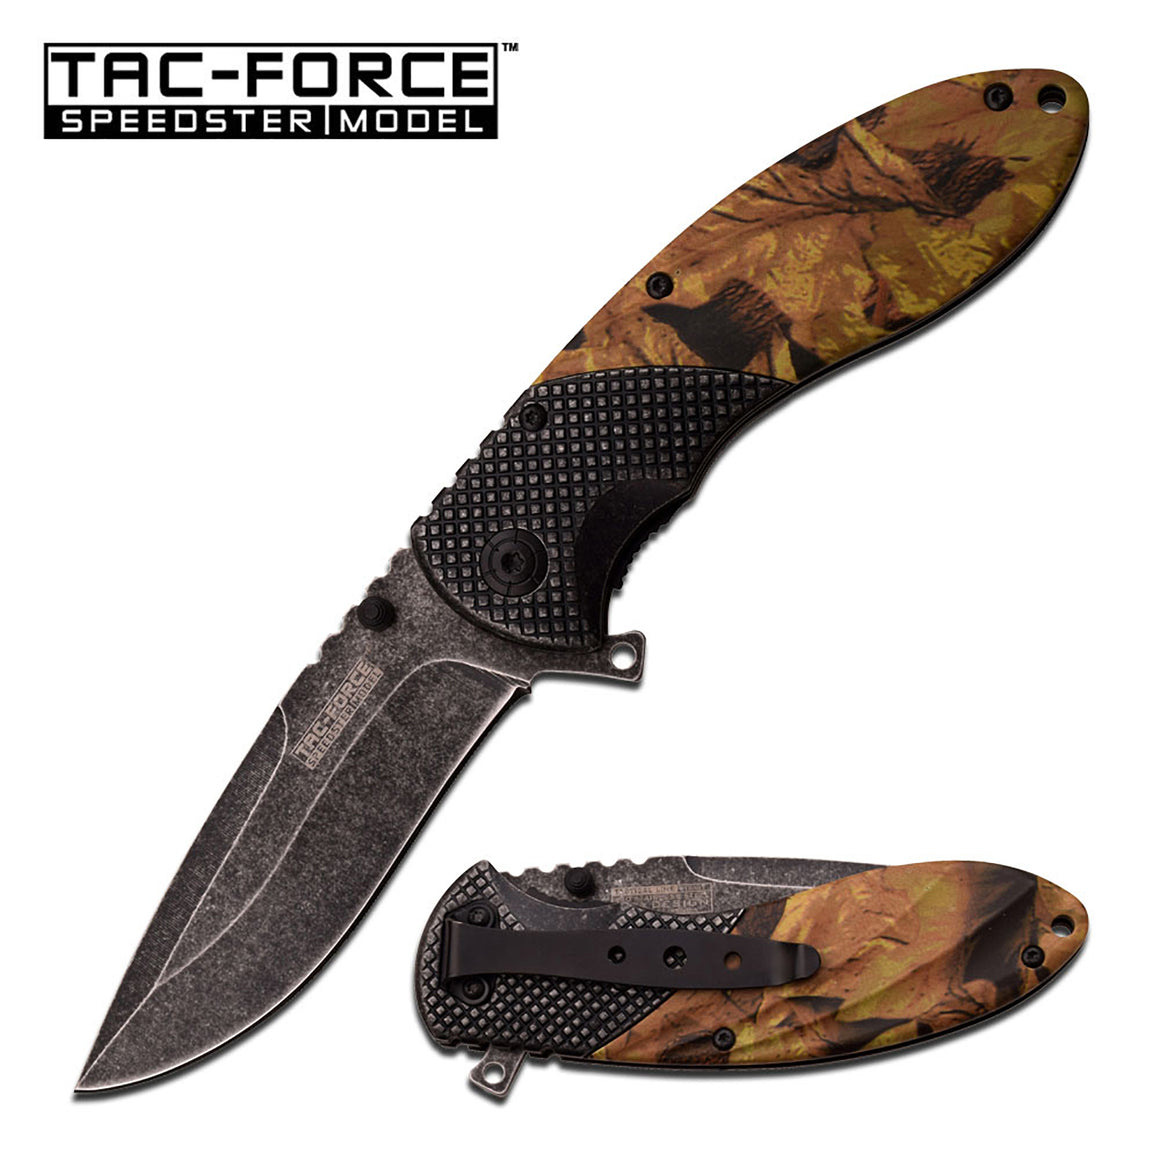 Tac-Force TF-911CA Spring Assisted Knife